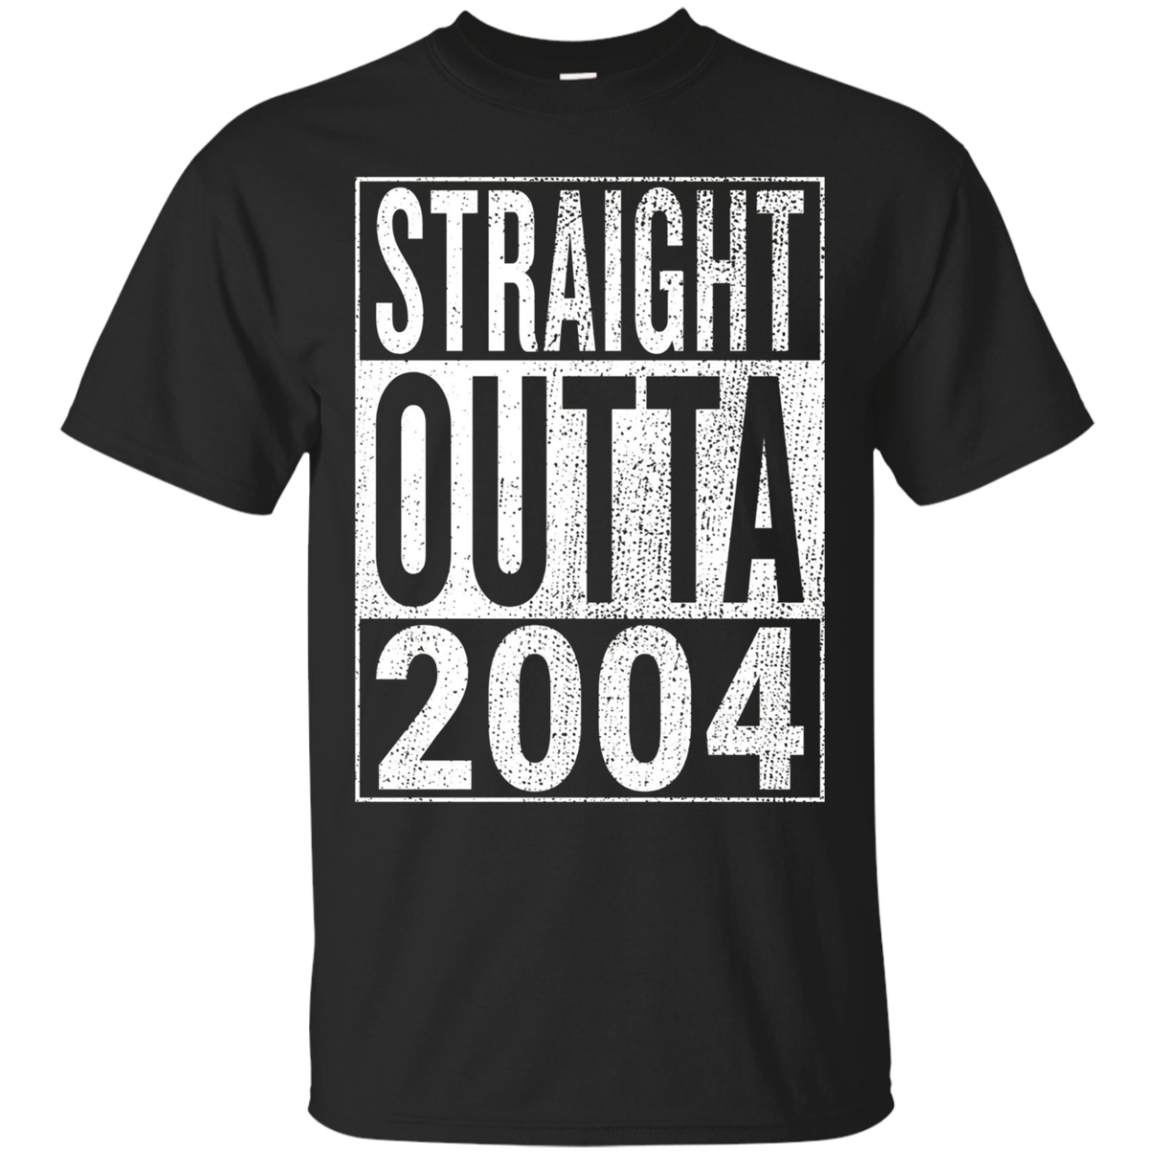 Straight Outta 2004 | Great 14th Birthday Gift Idea t-shirt